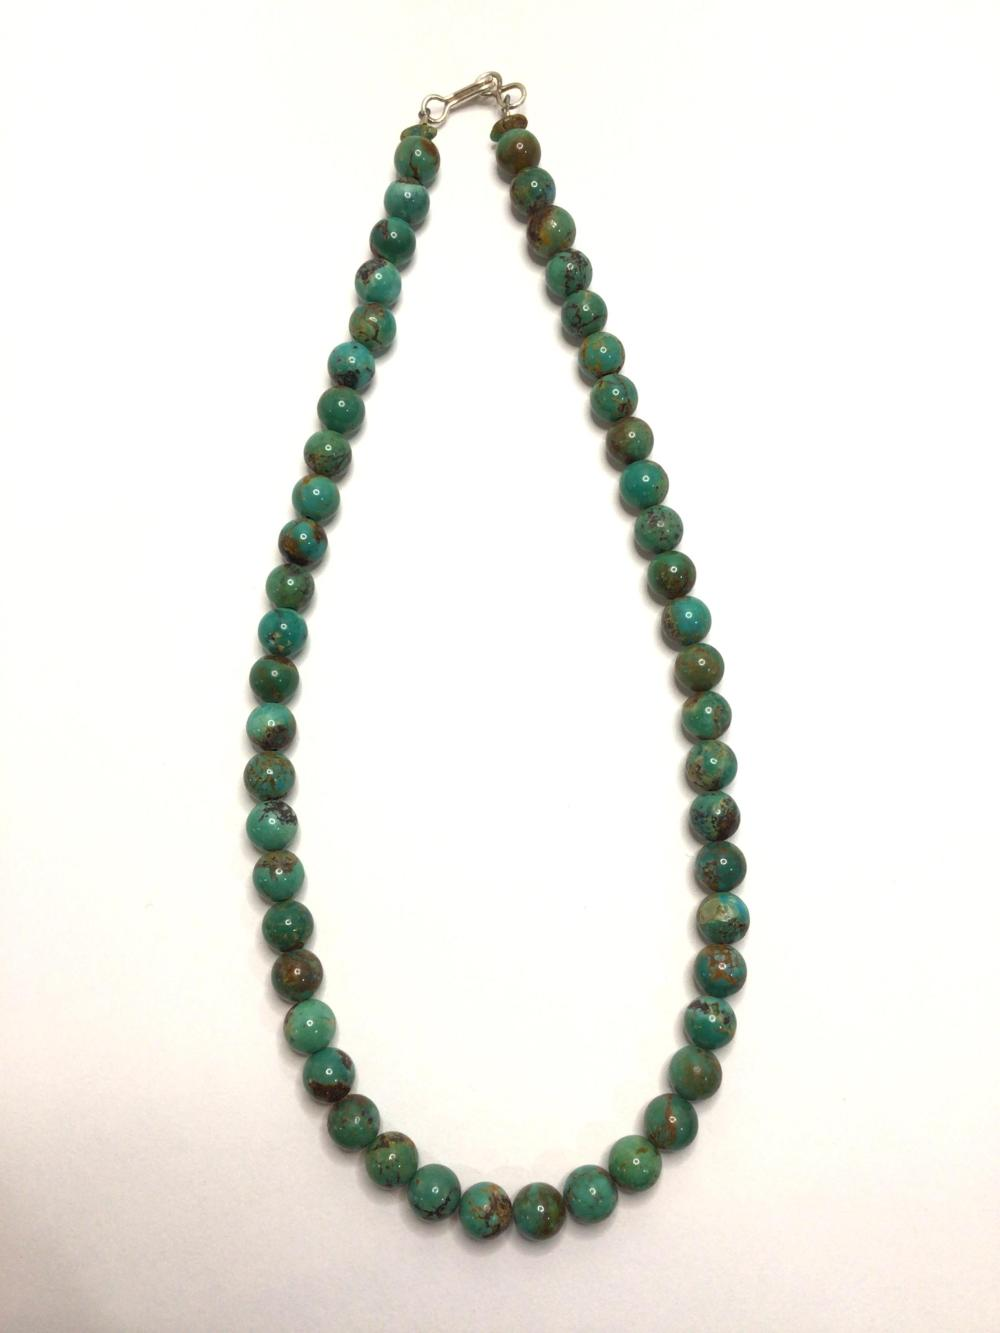 A: Handmade beaded possibly turquoise necklace